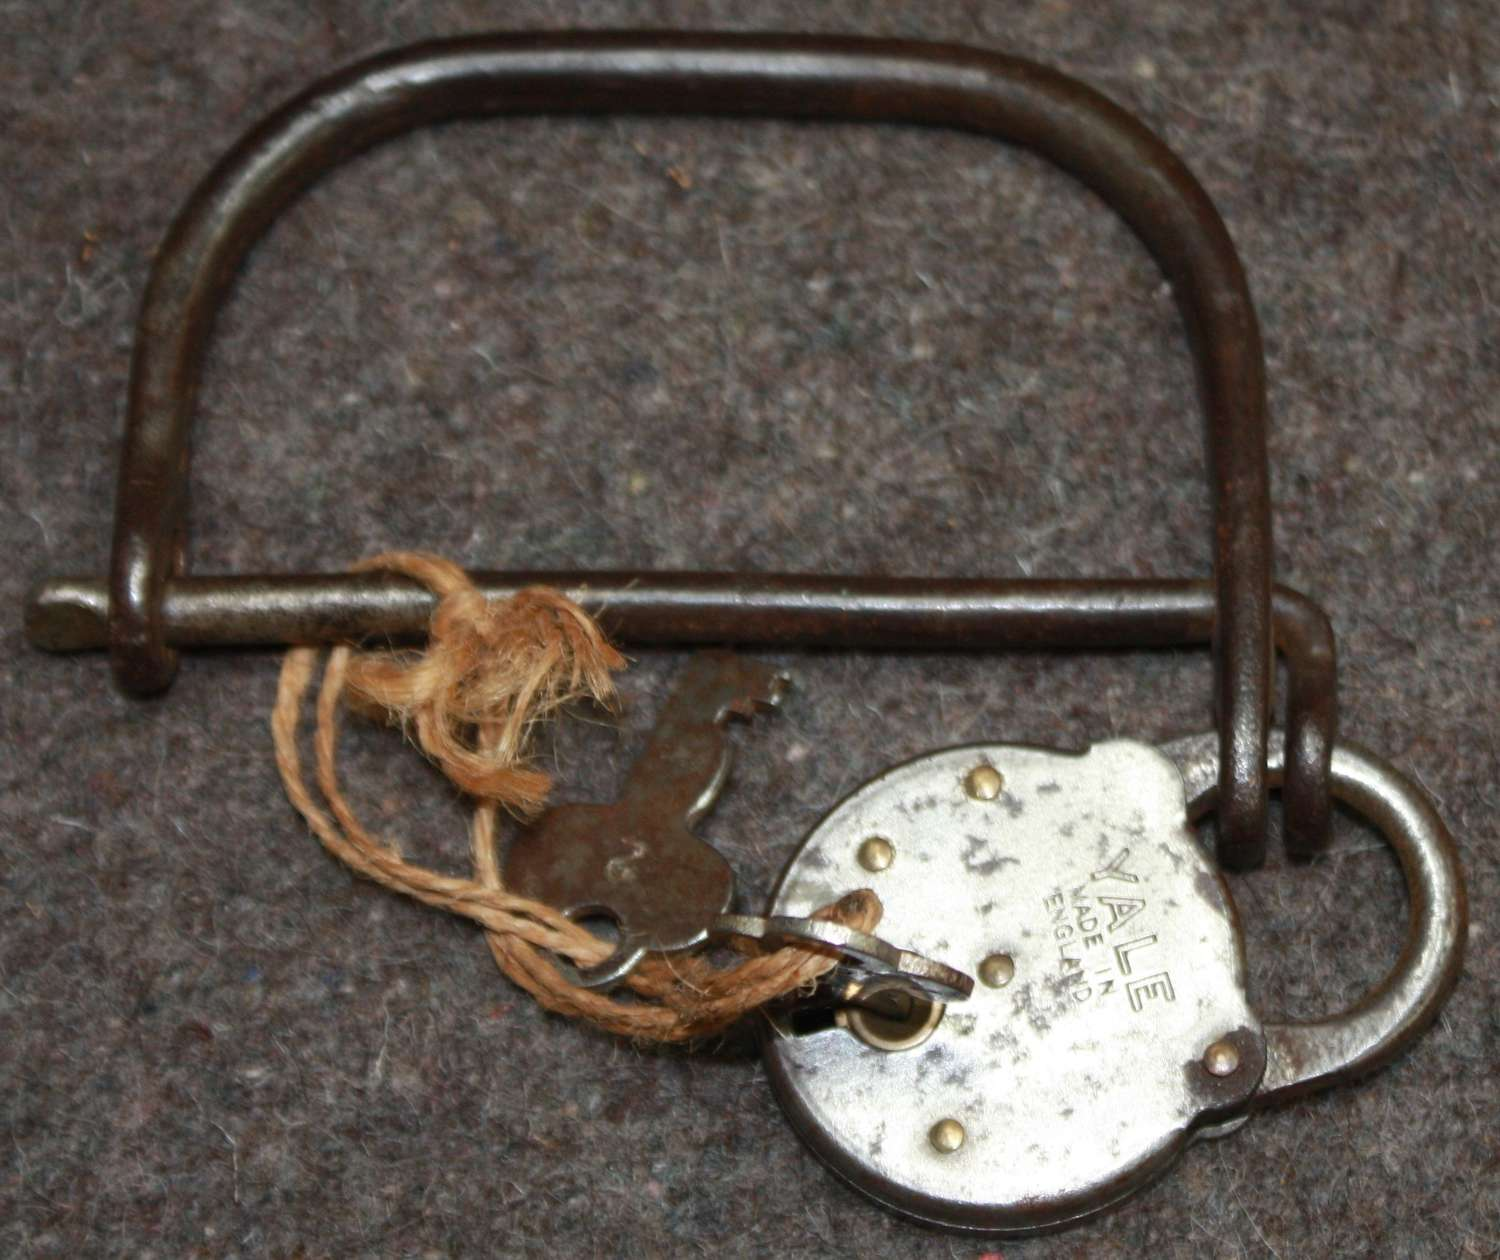 A WWII PERIOD KIT BAG RING AND LOCK